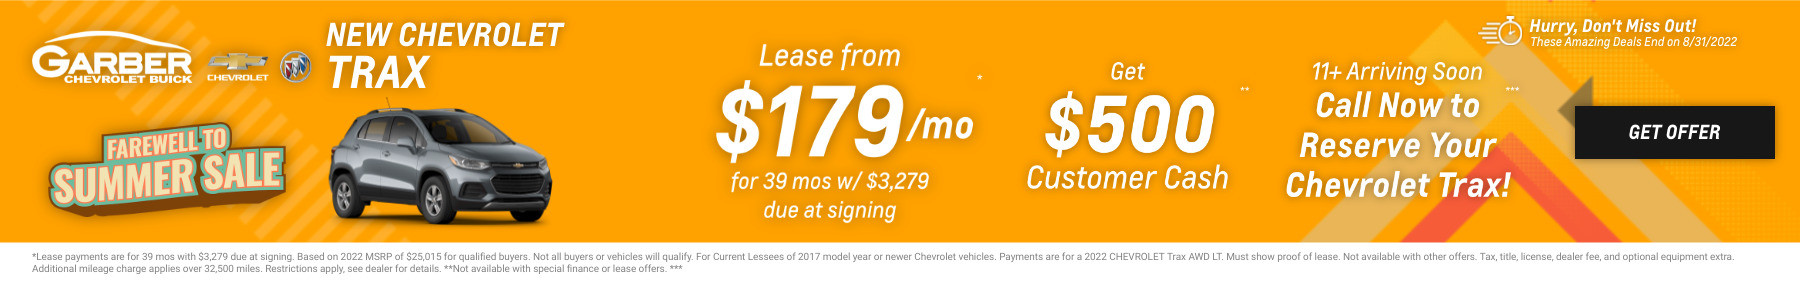 New Chevrolet Trax Current Deals and Offers in Chesaning, MI